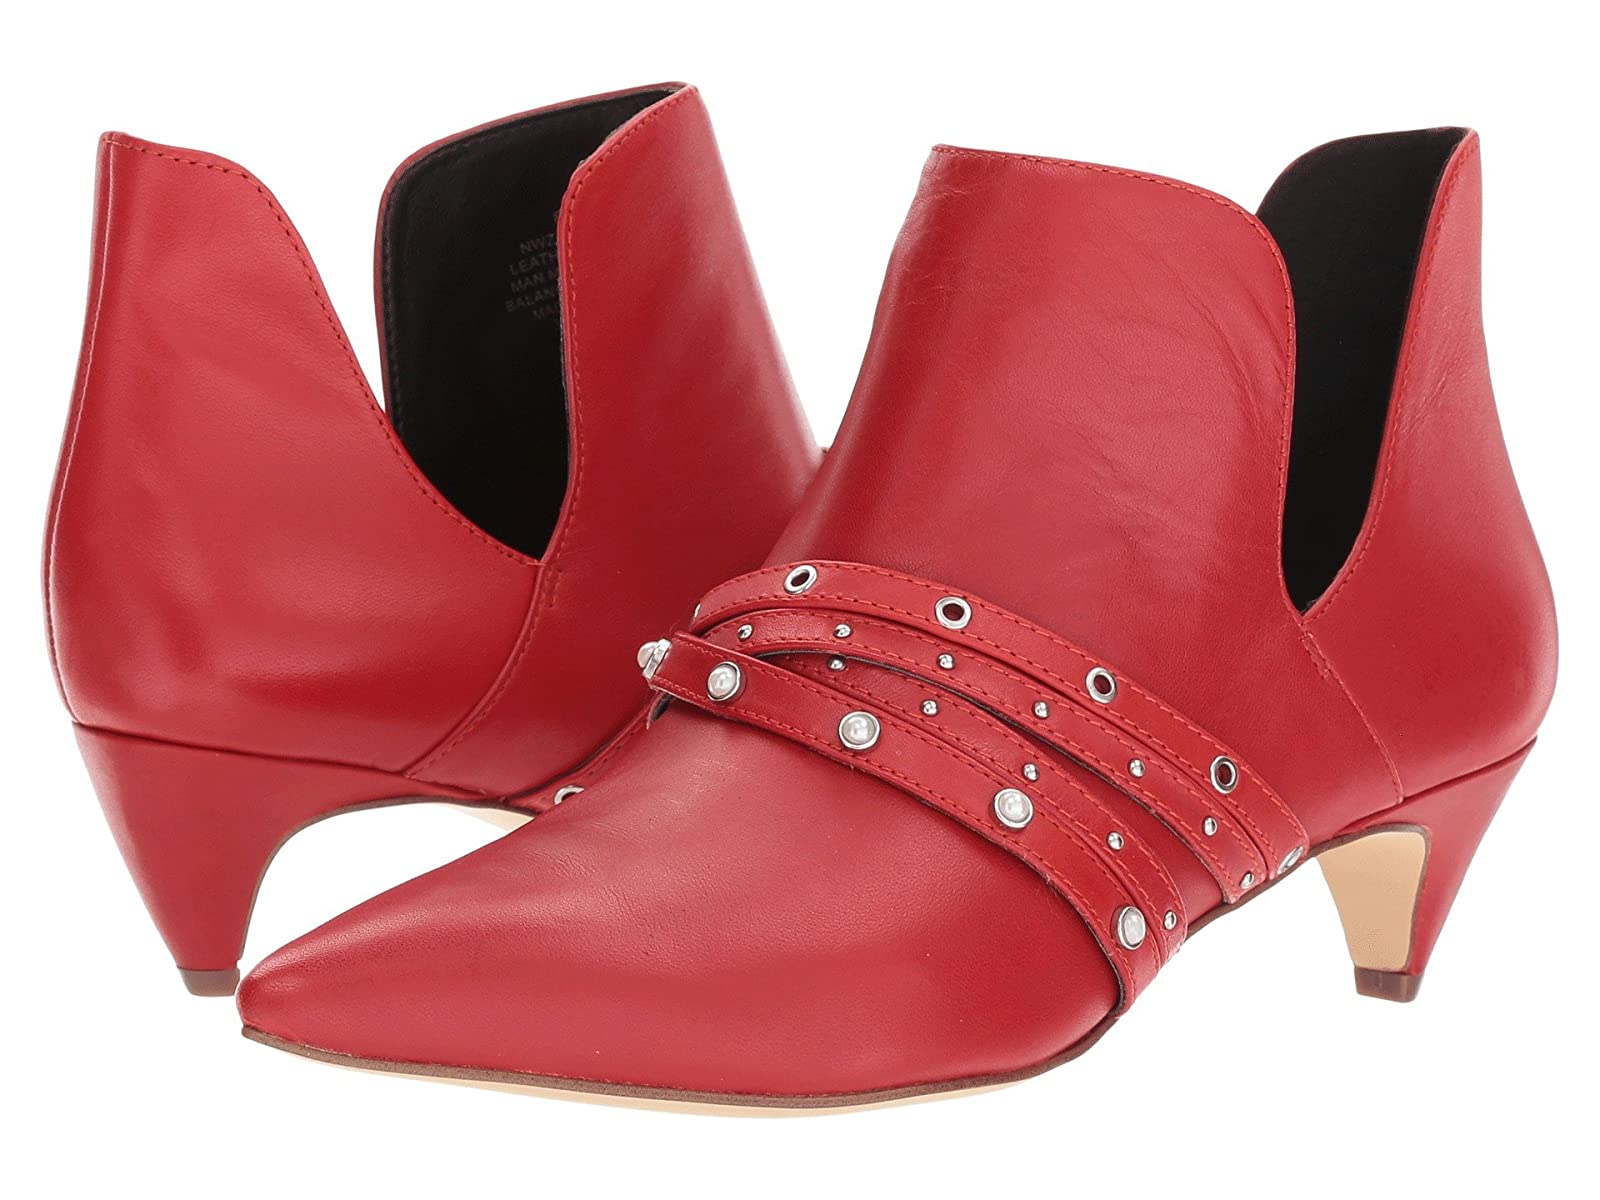 Nine West ZorollaCheap and distinctive eye-catching shoes